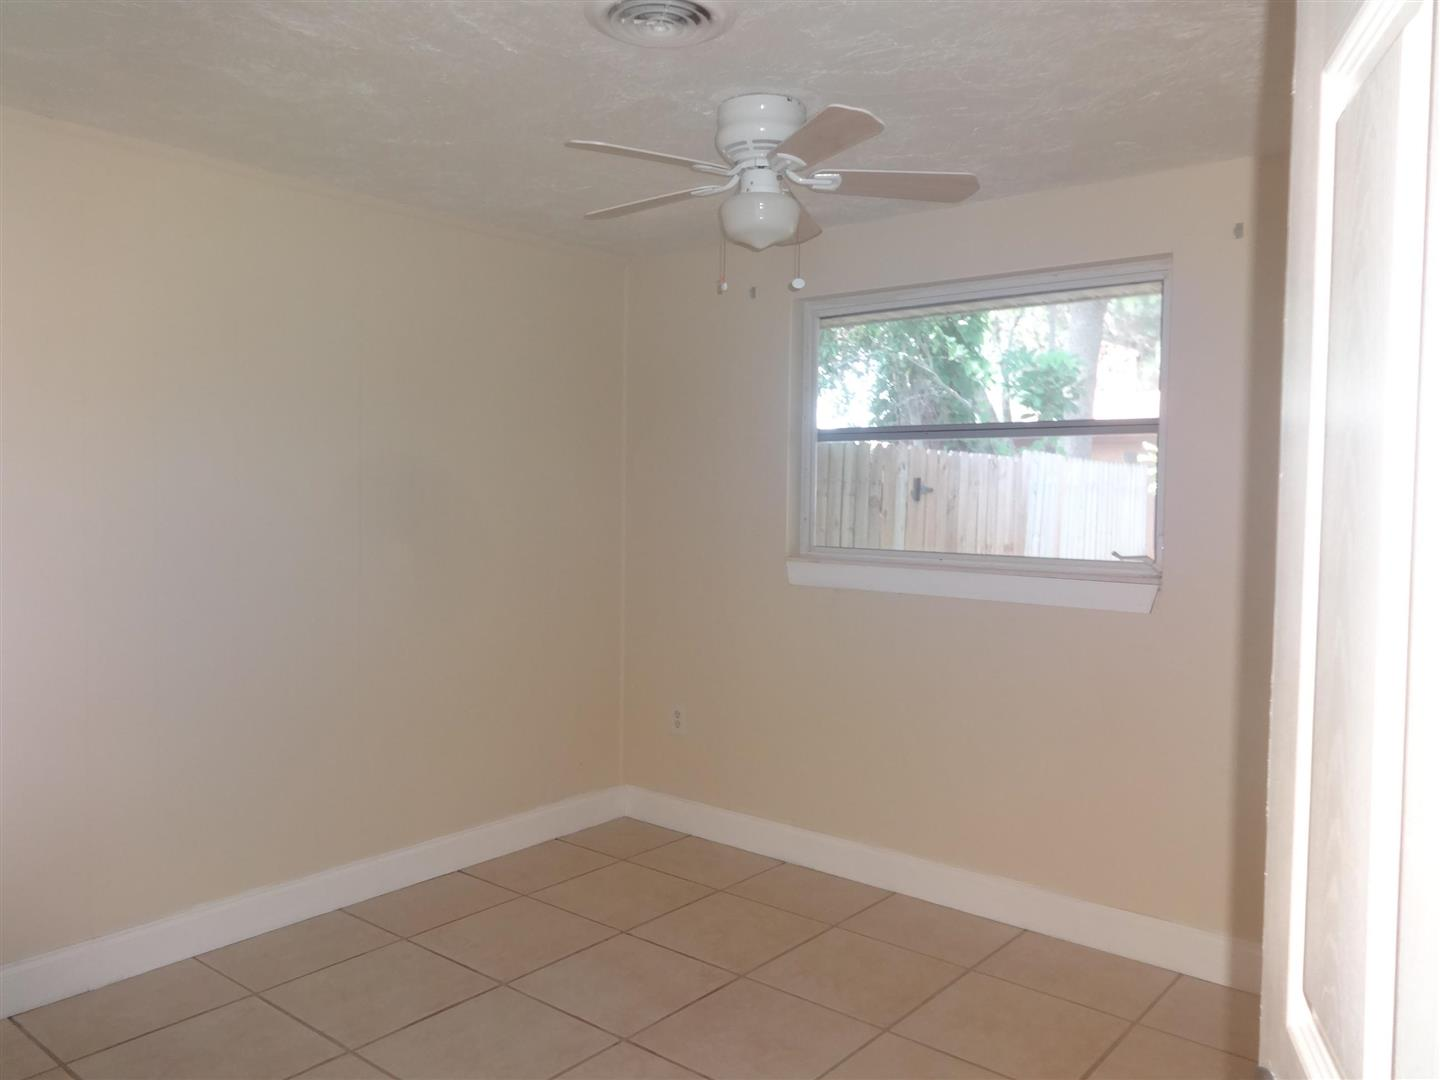 1295DevonRoadThirdBedroom.JPG